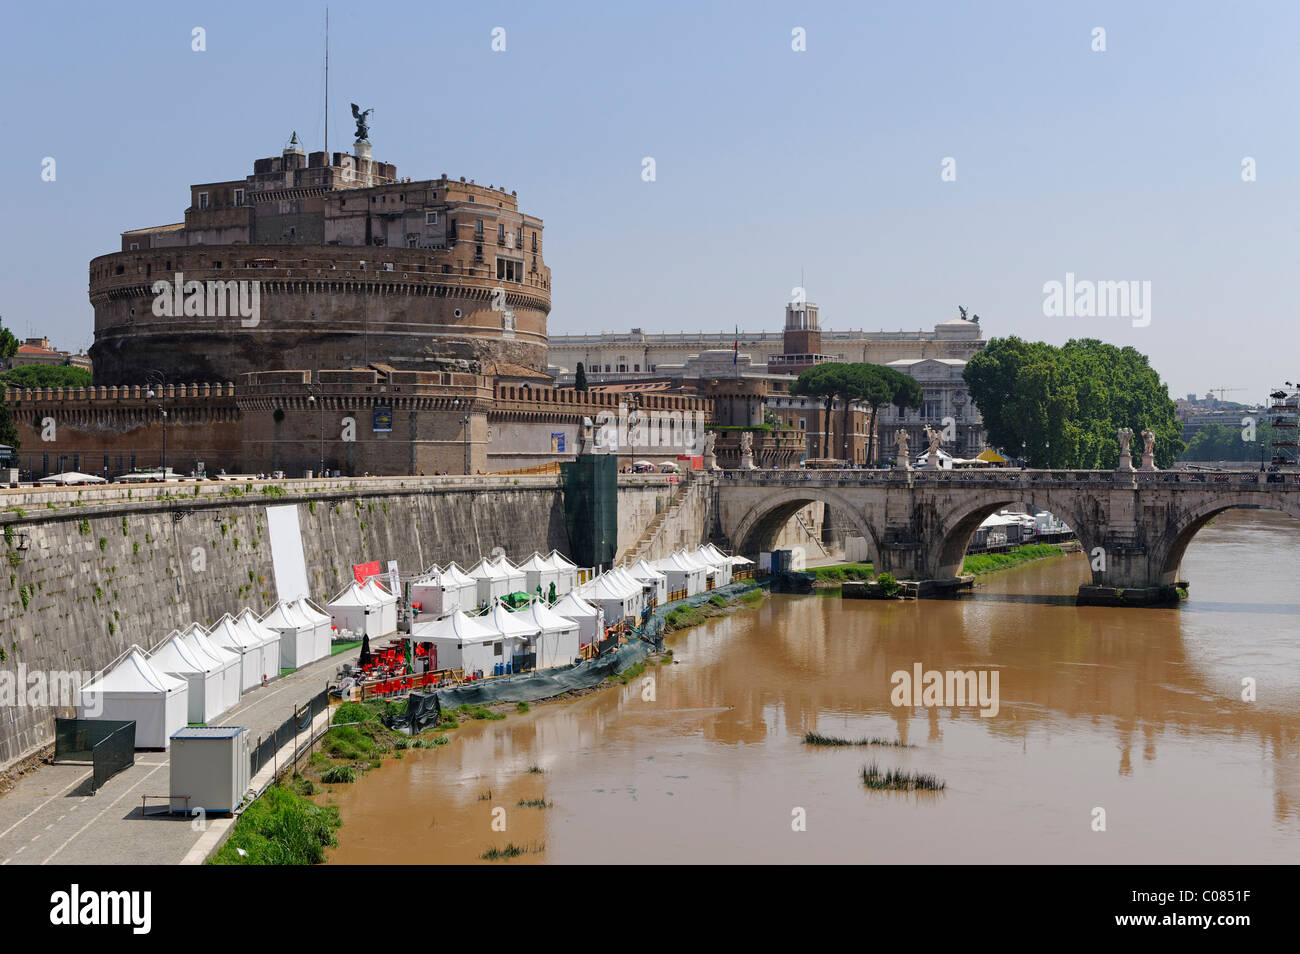 Castel Sant'Angelo, Mausoleum of Hadrian, with muddy river Tiber, Rome, Italy, Europe - Stock Image